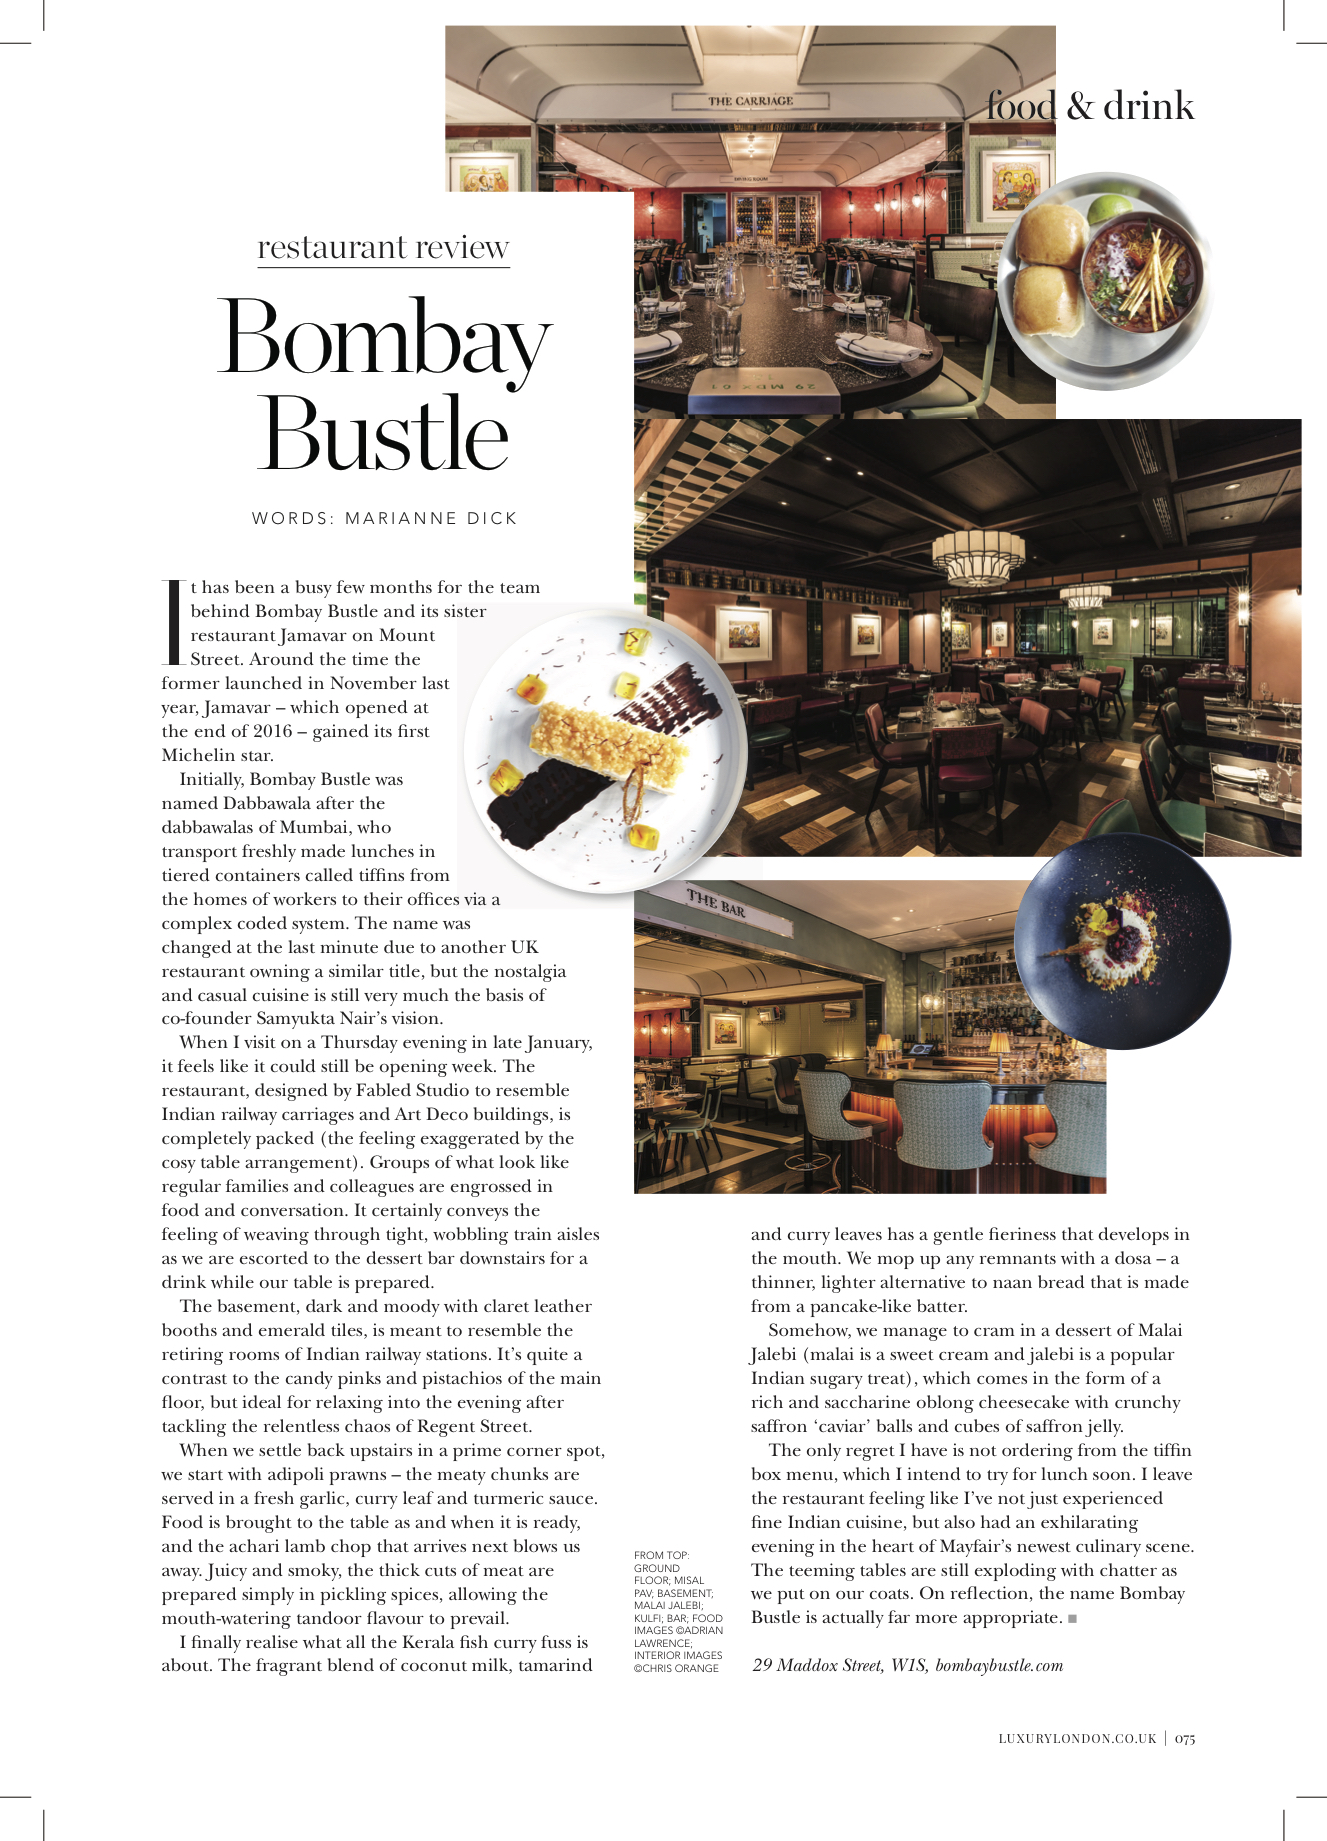 075 MAYF APR 18 FOOD & DRINK - REVIEW BOMBAY BUSTLE.jpg